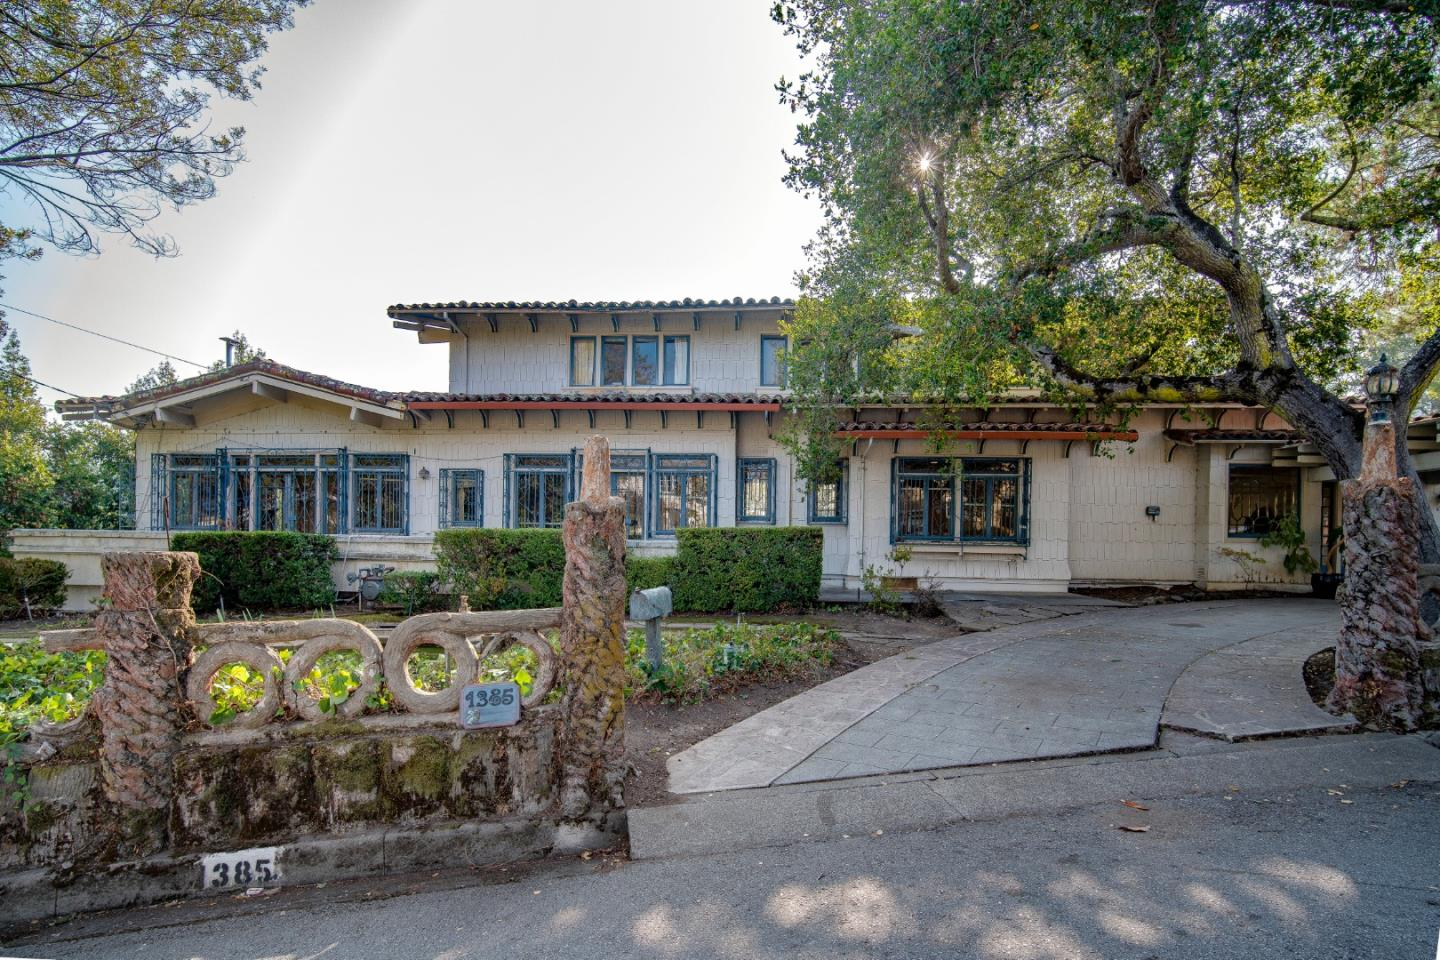 1385 Hillside CIR, Burlingame, California